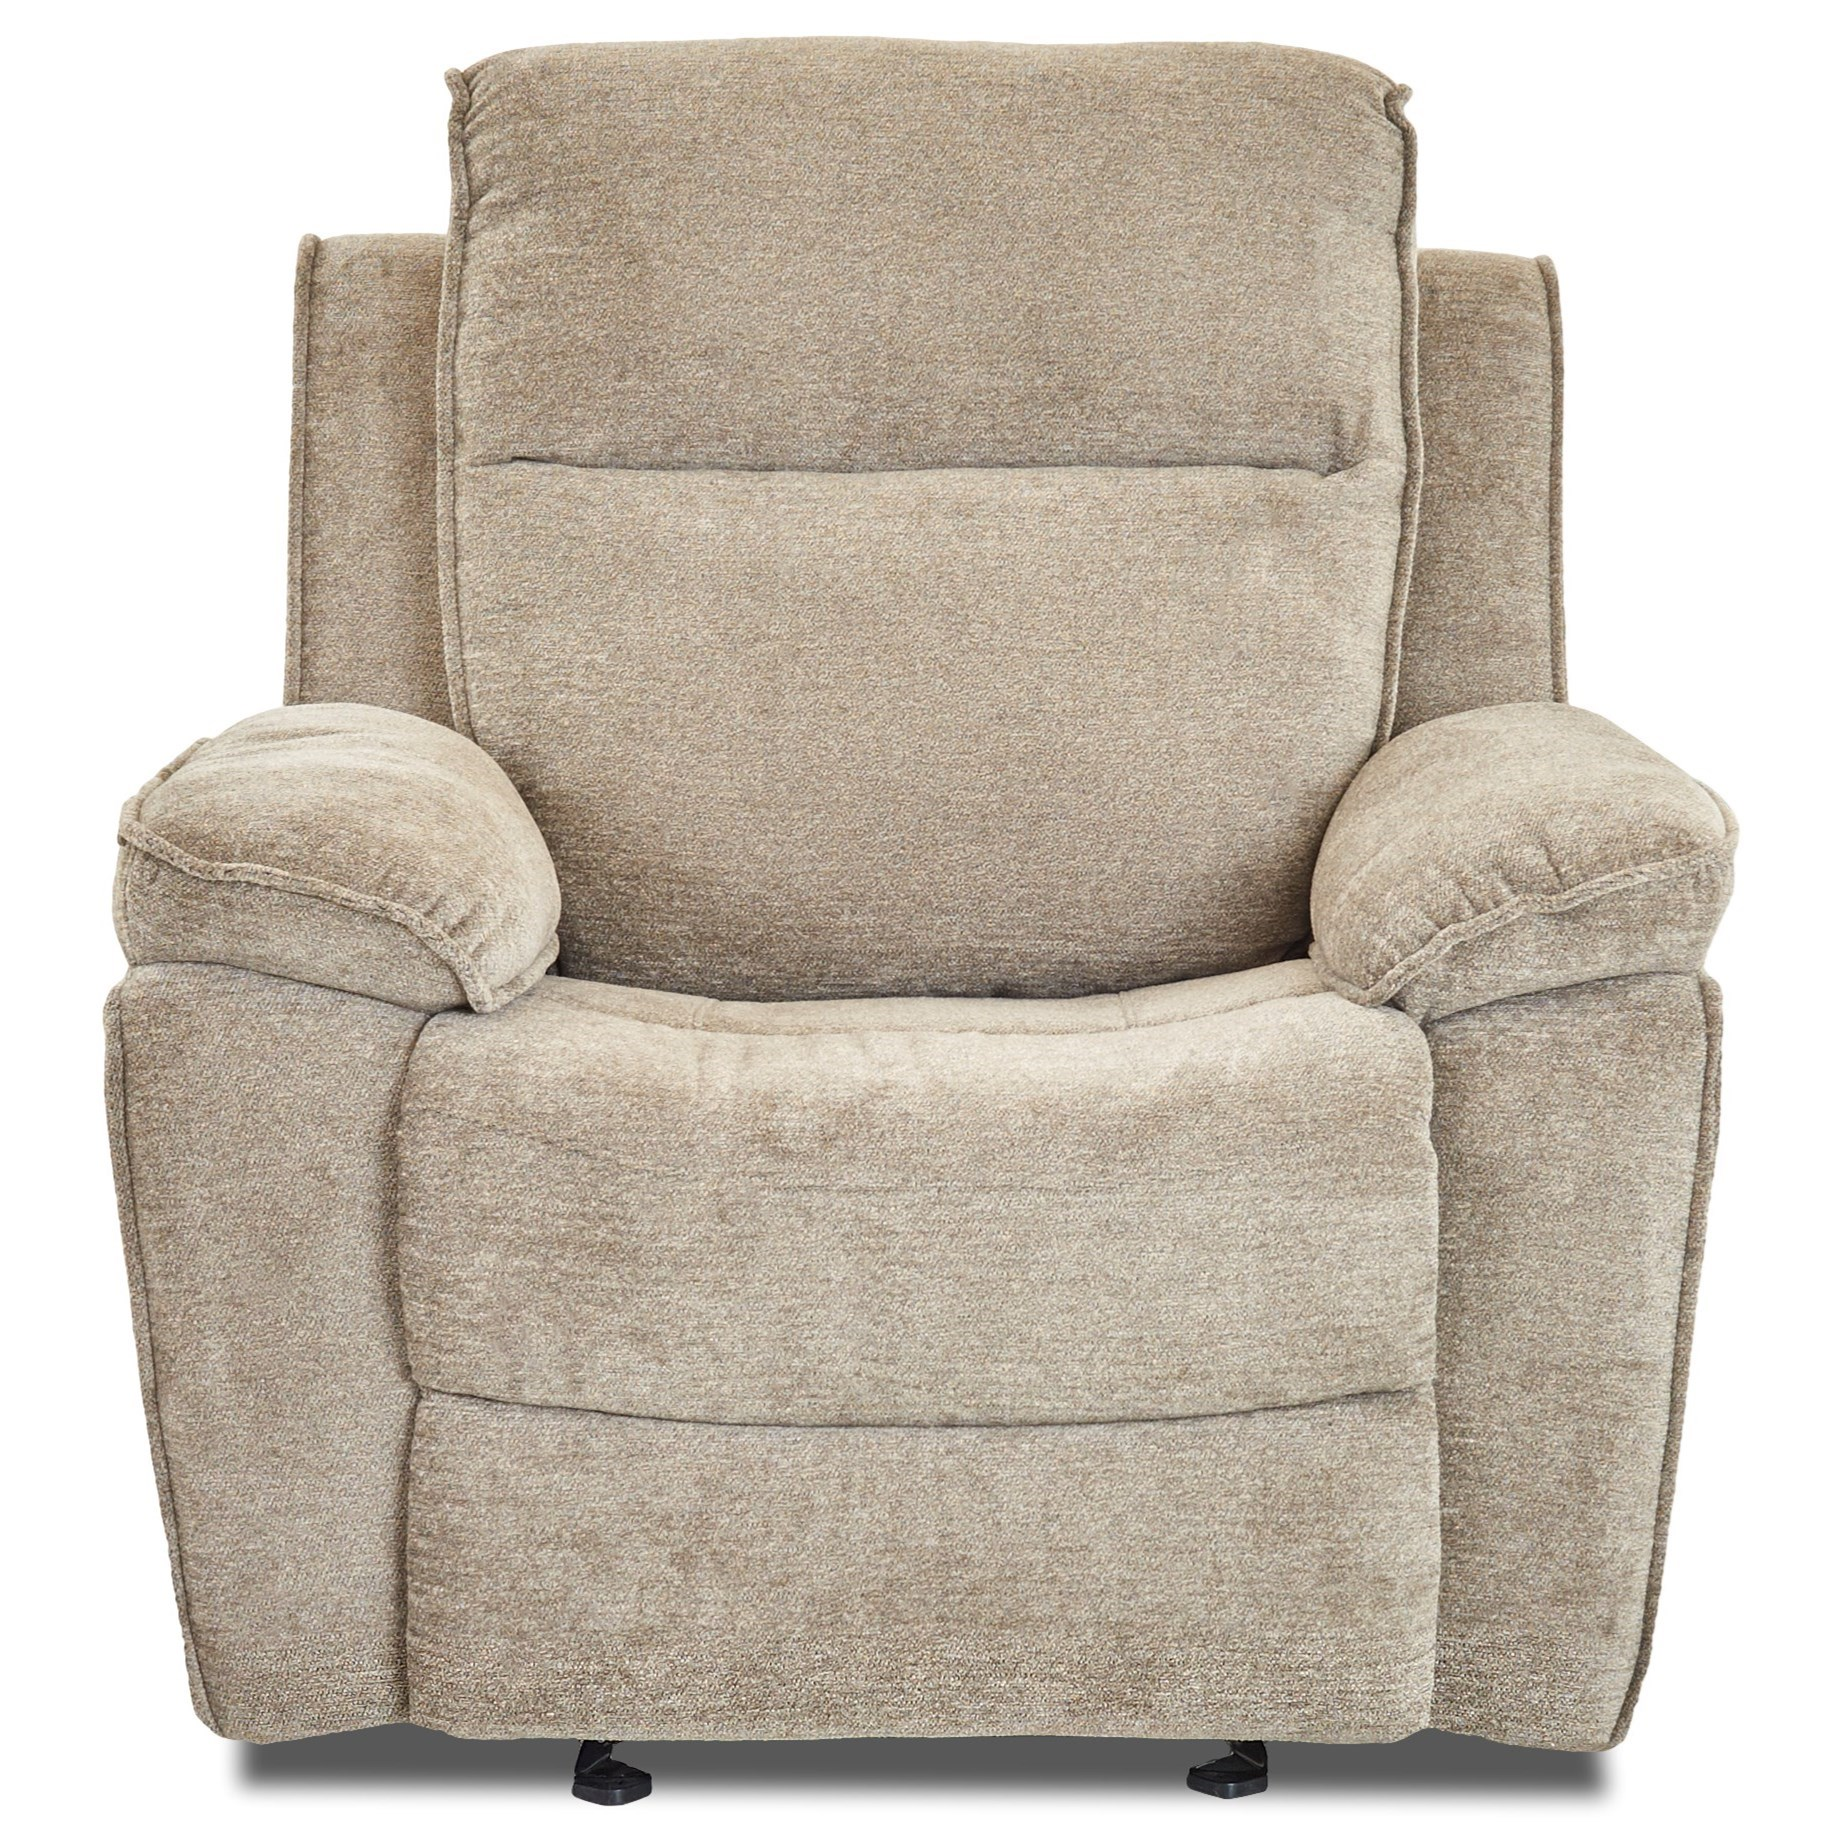 Casual Reclining Rocking Chair